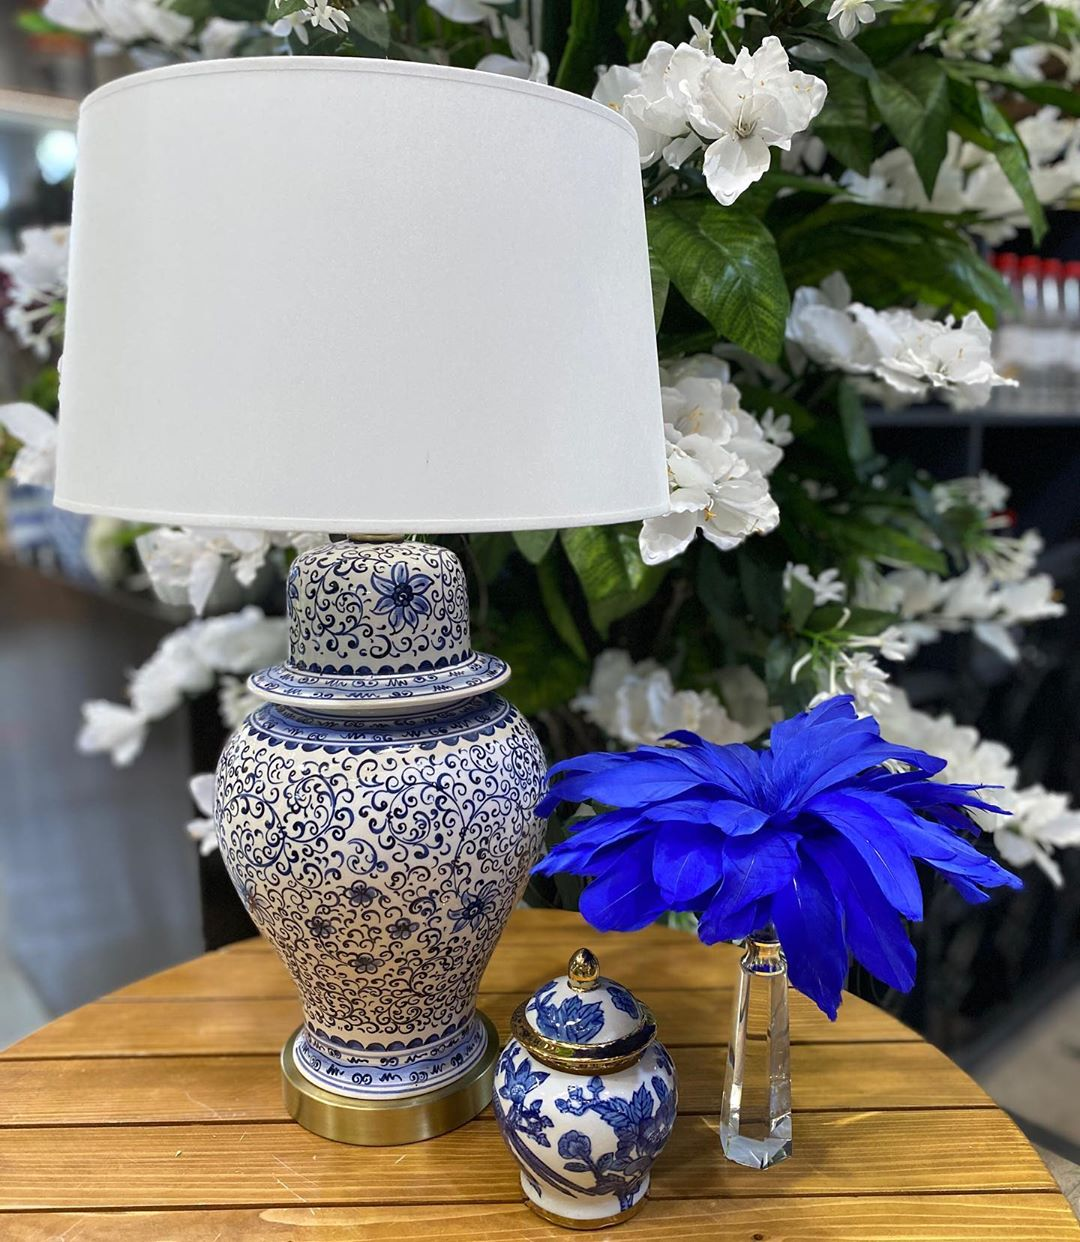 New Decor Trends for Home Designs and Ideas 2021 (132)